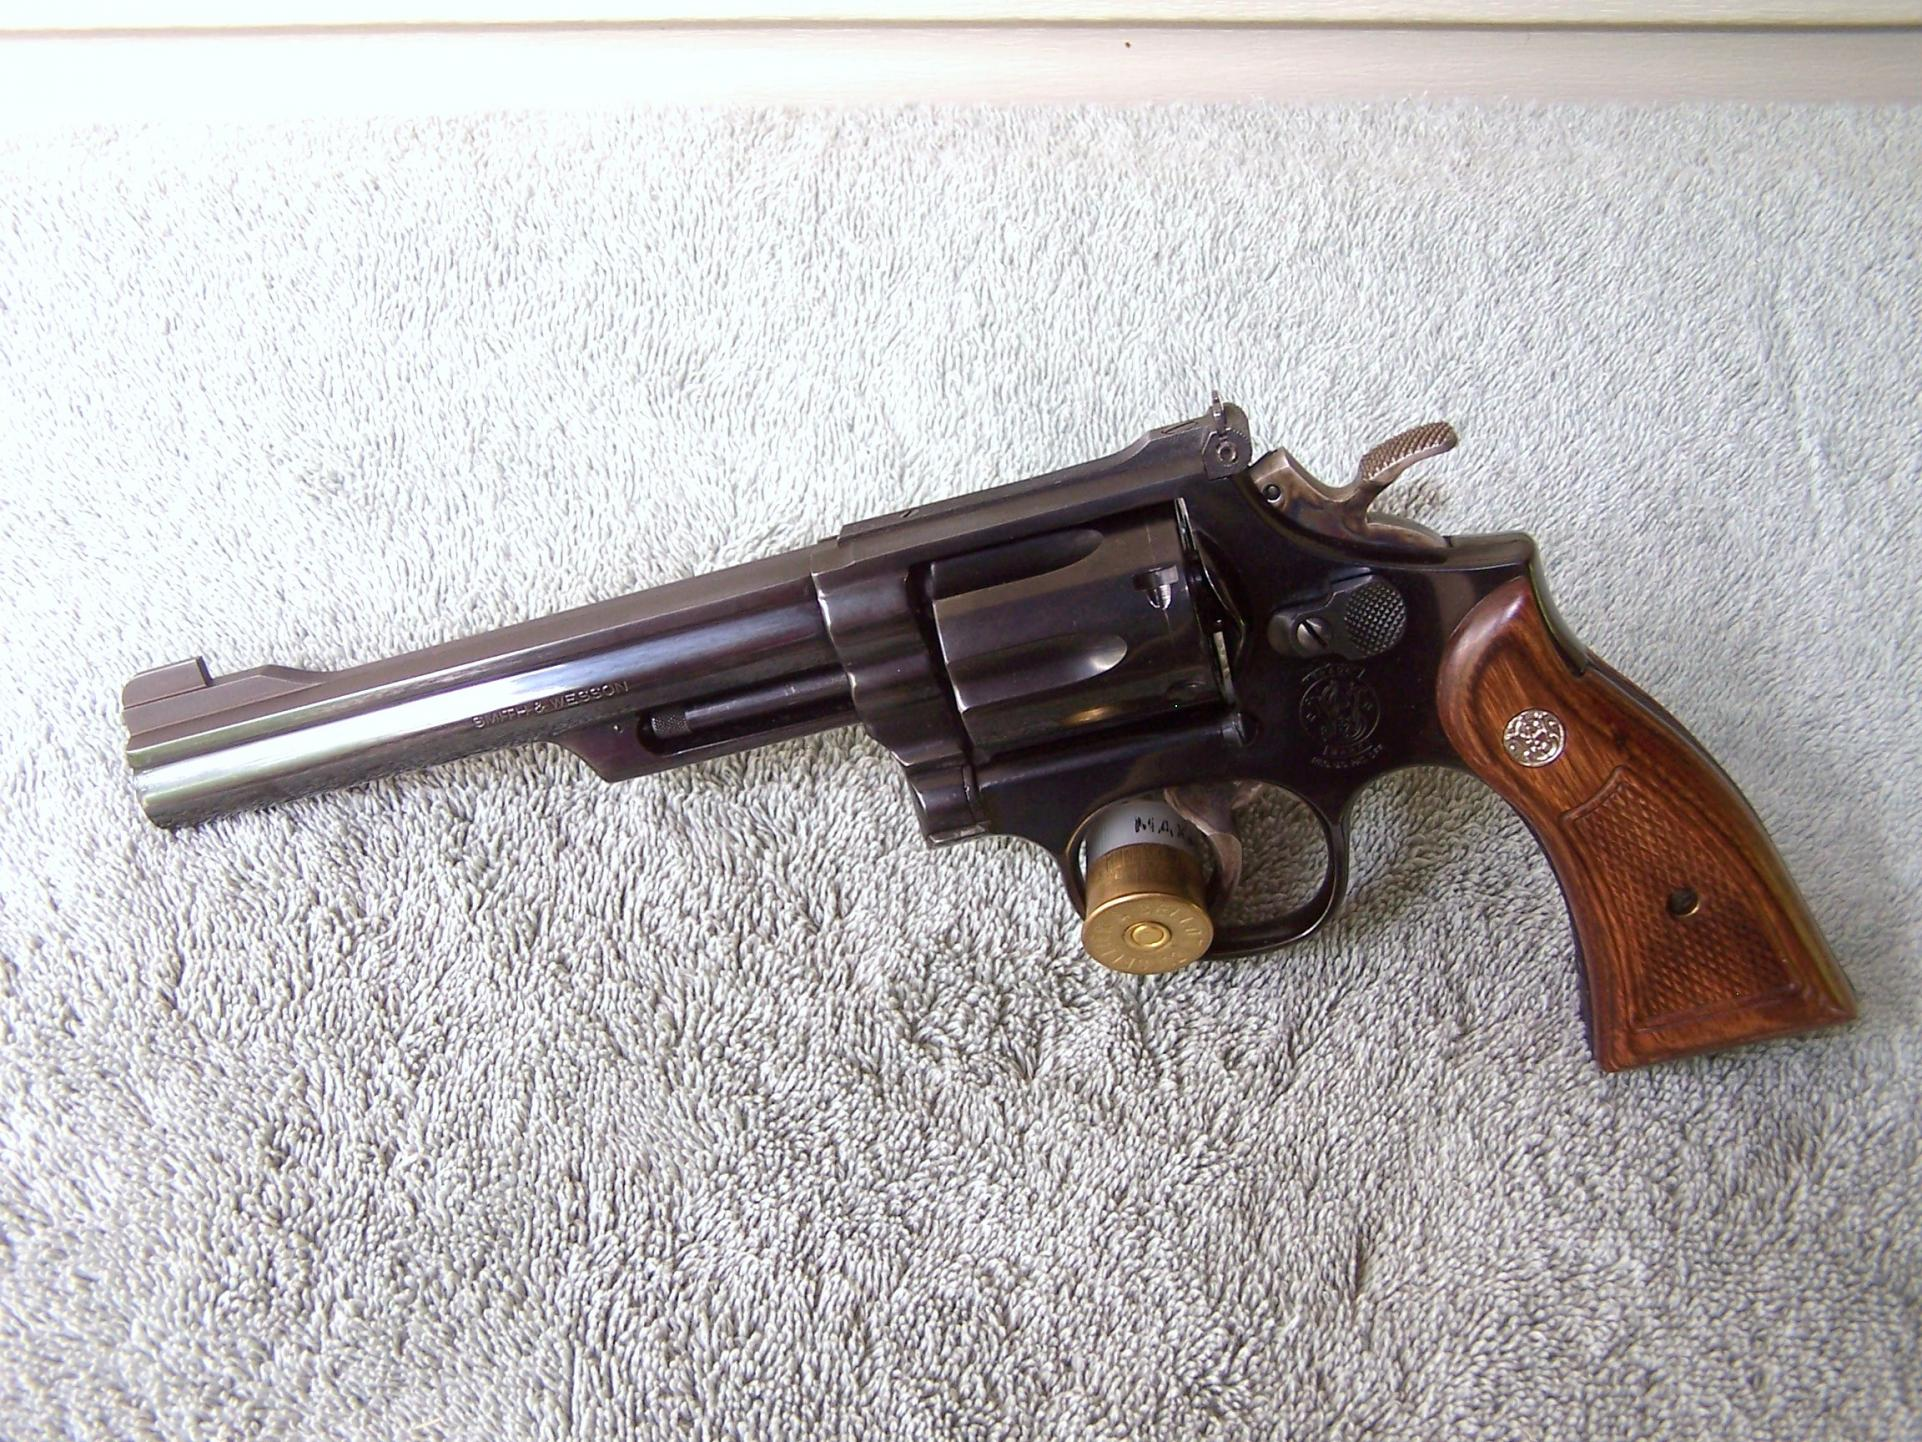 Lets See Your Current Favorite Gun (That You Own)-acf0064.jpg